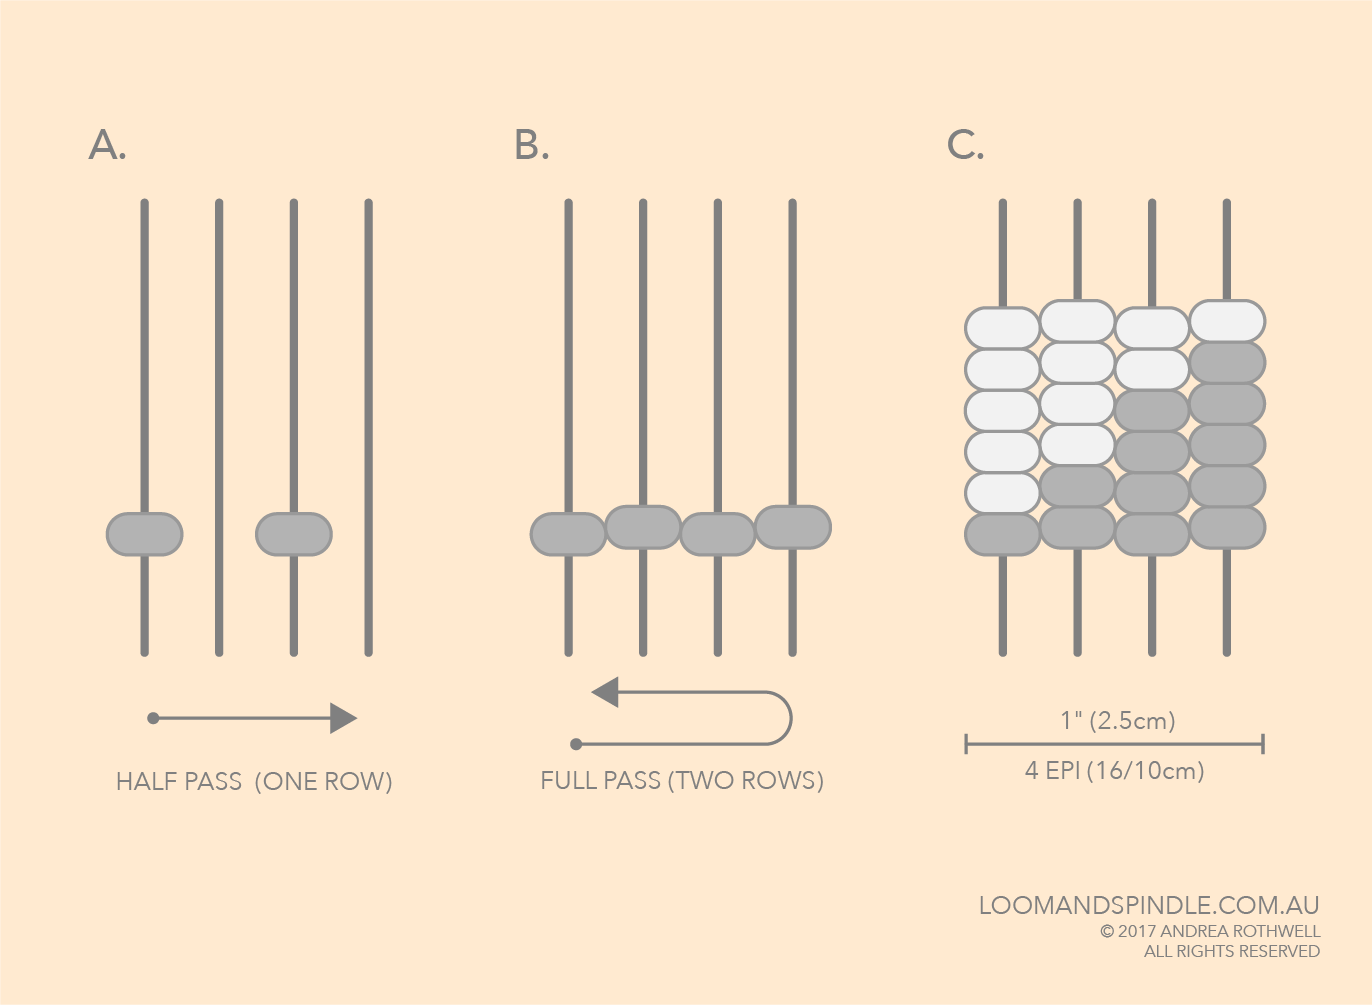 A. First woven row, creates two dots of weft and leaves two warp threads exposed.    B. Second row of weft completes the pass, creates four dots of weft per horizontal inch.    C. Six full passes of weft completed, colour changes are incorporated and weave sequence is maintained.